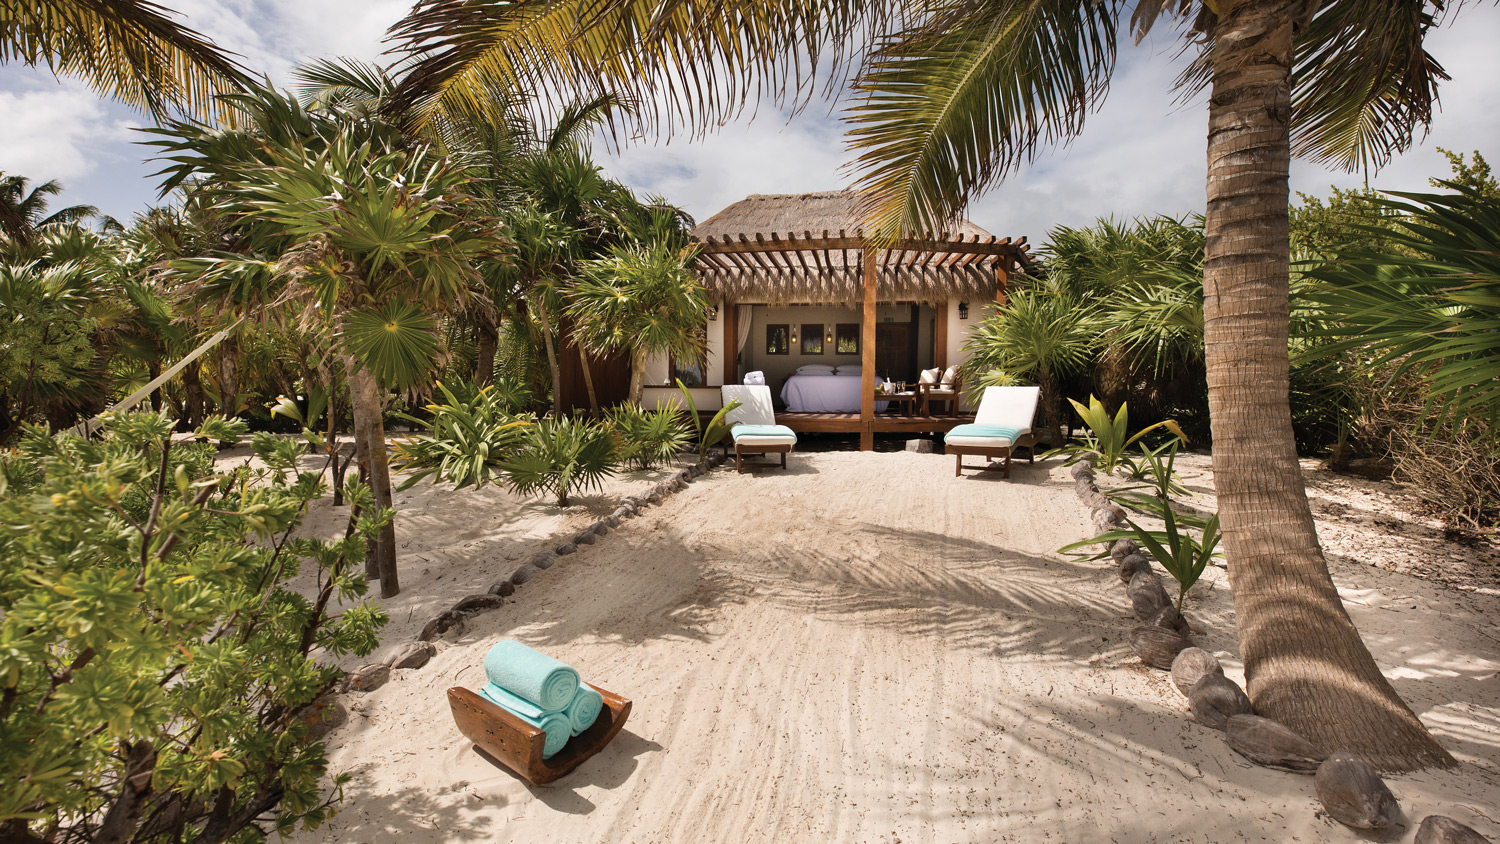 Secluded bliss at the Mukan Resort near Tulum.